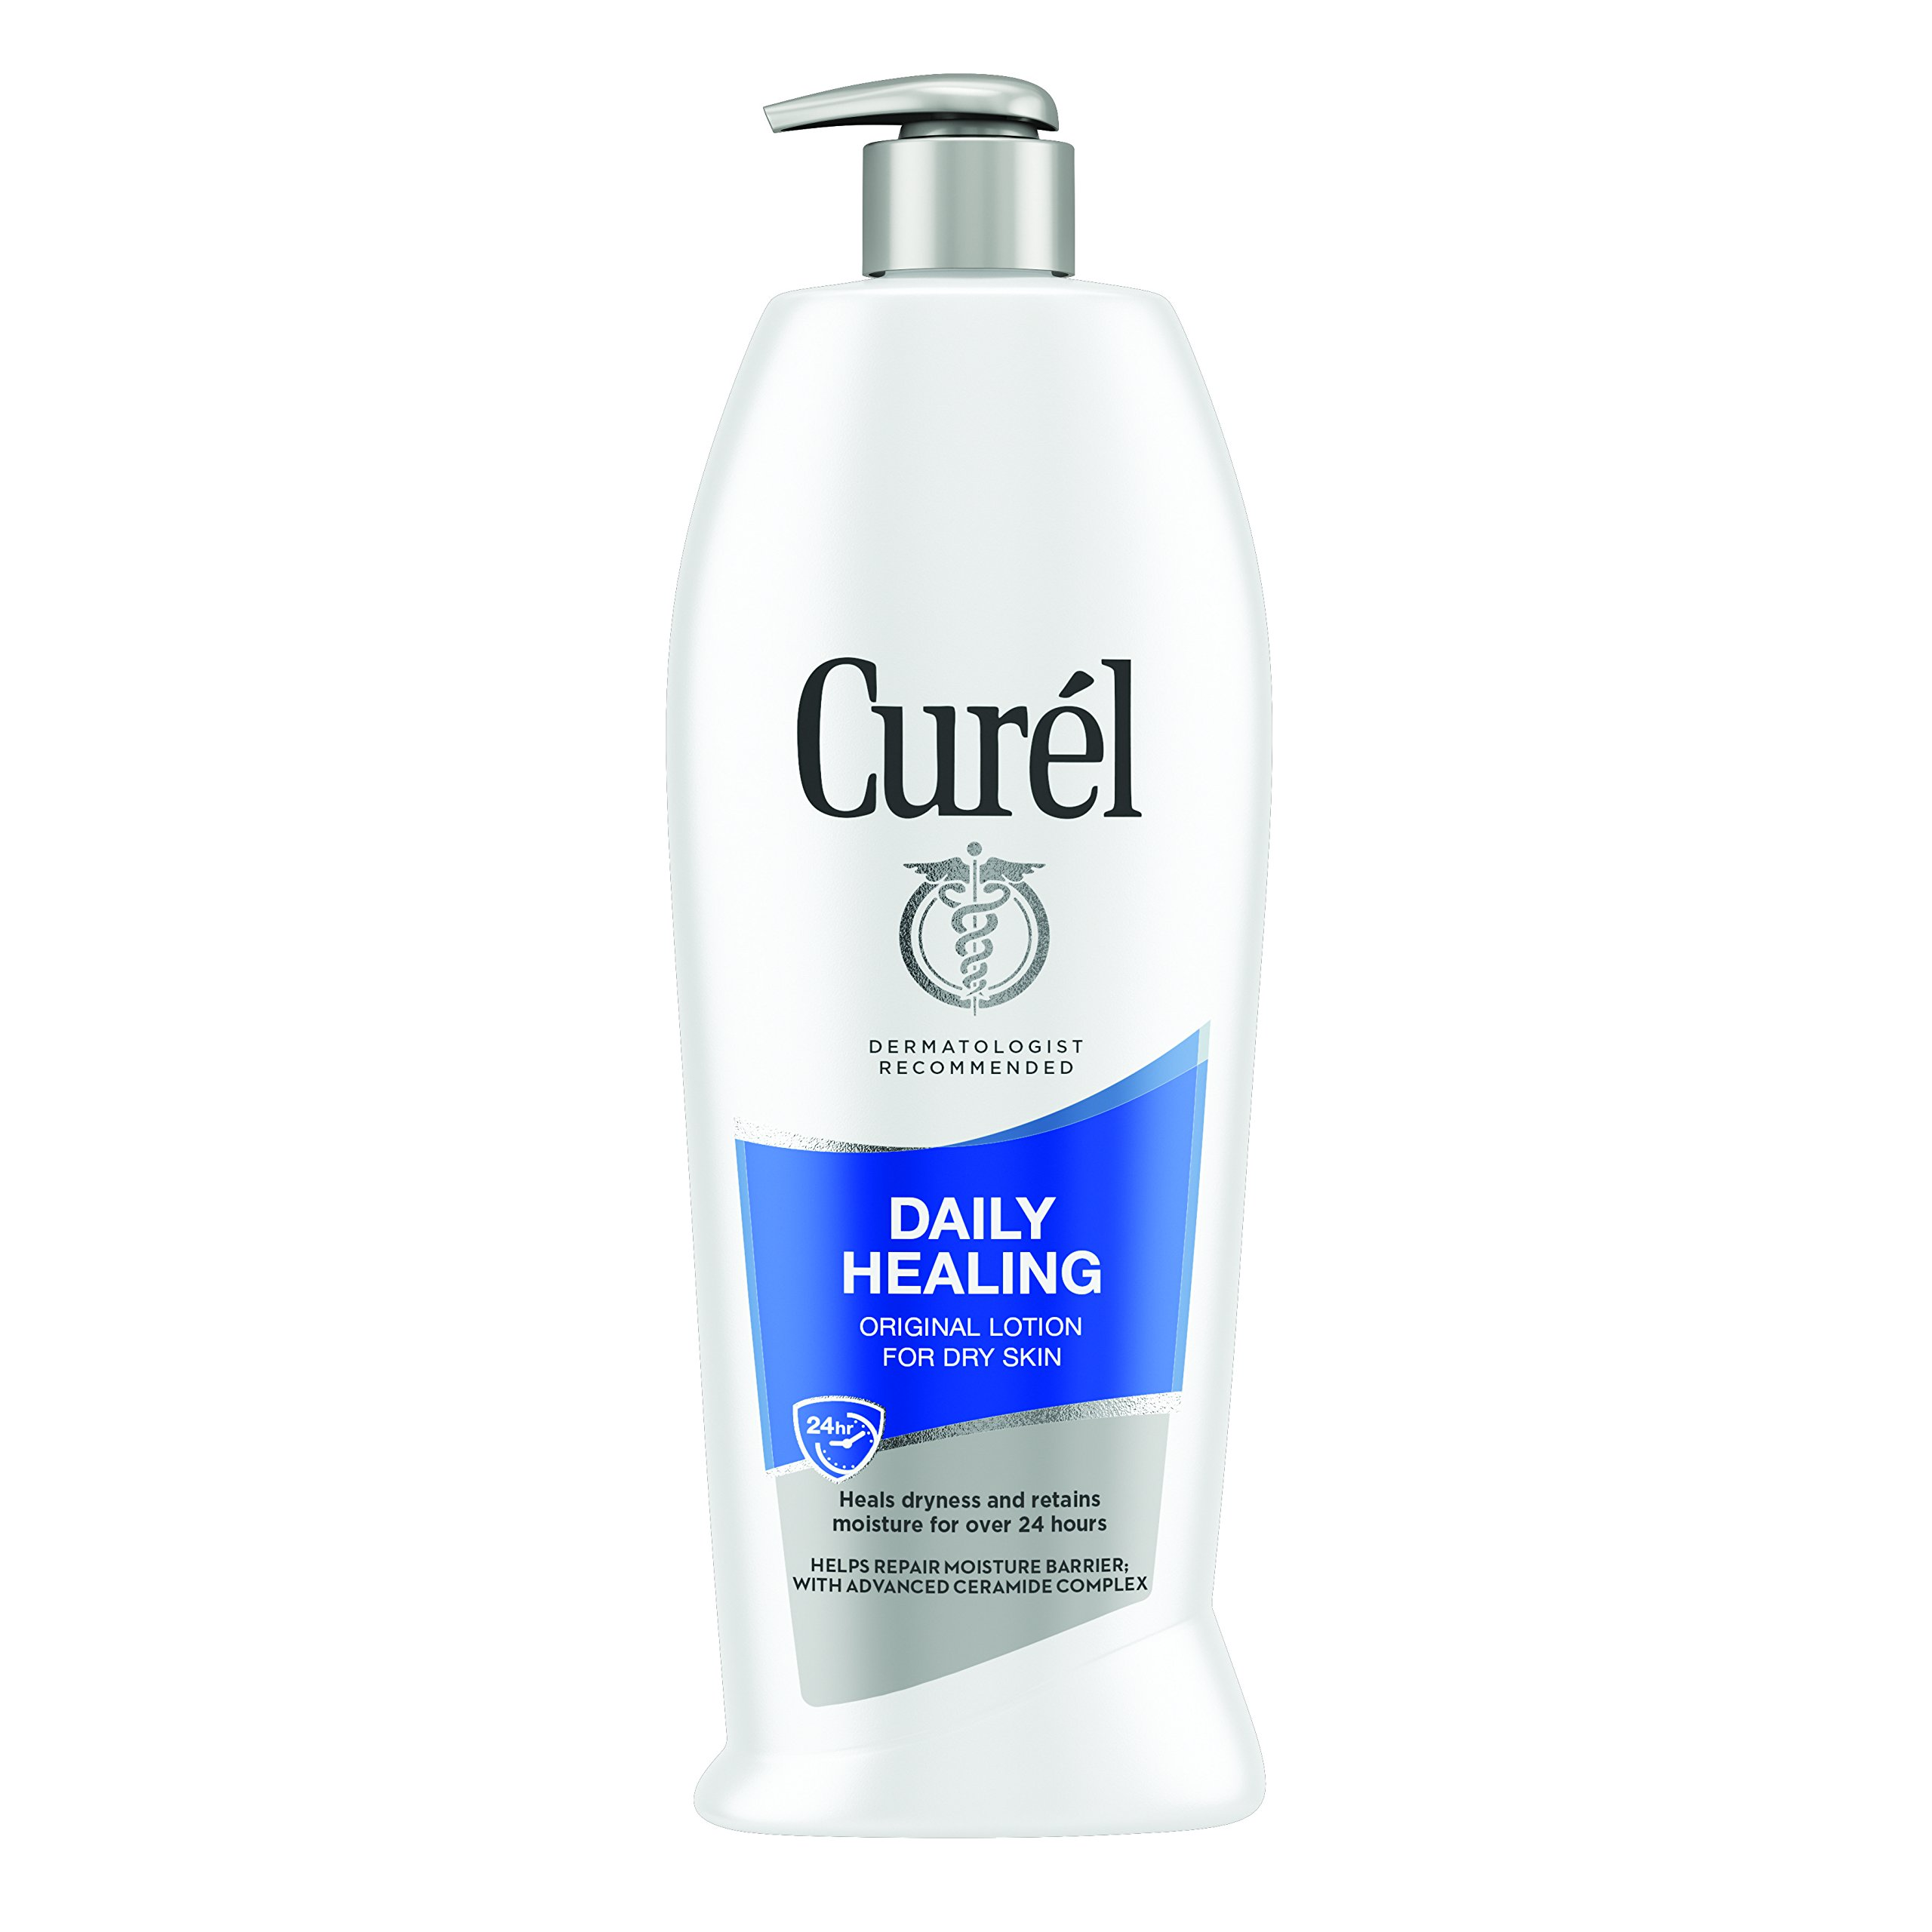 Curél Daily Healing Body Lotion for Dry Skin, Body and Hand Lotion, with Advanced Ceramide Complex, Repairs Moisture Barrier, 20 Fl Oz